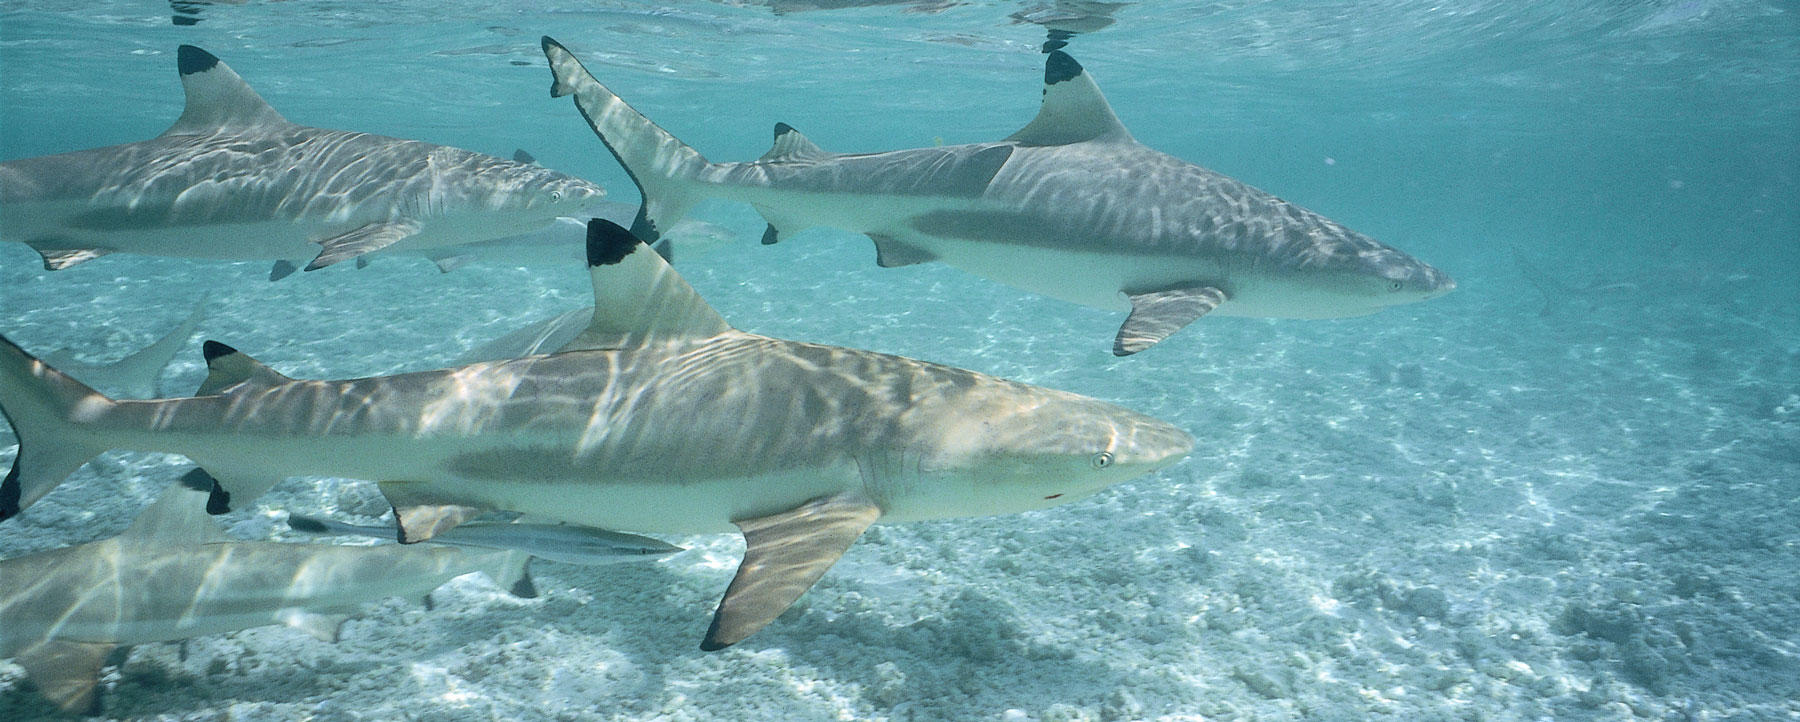 Blacktip reef sharks swim together in ocean. Carcharhinus melanopterus. Rangiroa, French Polynesia.